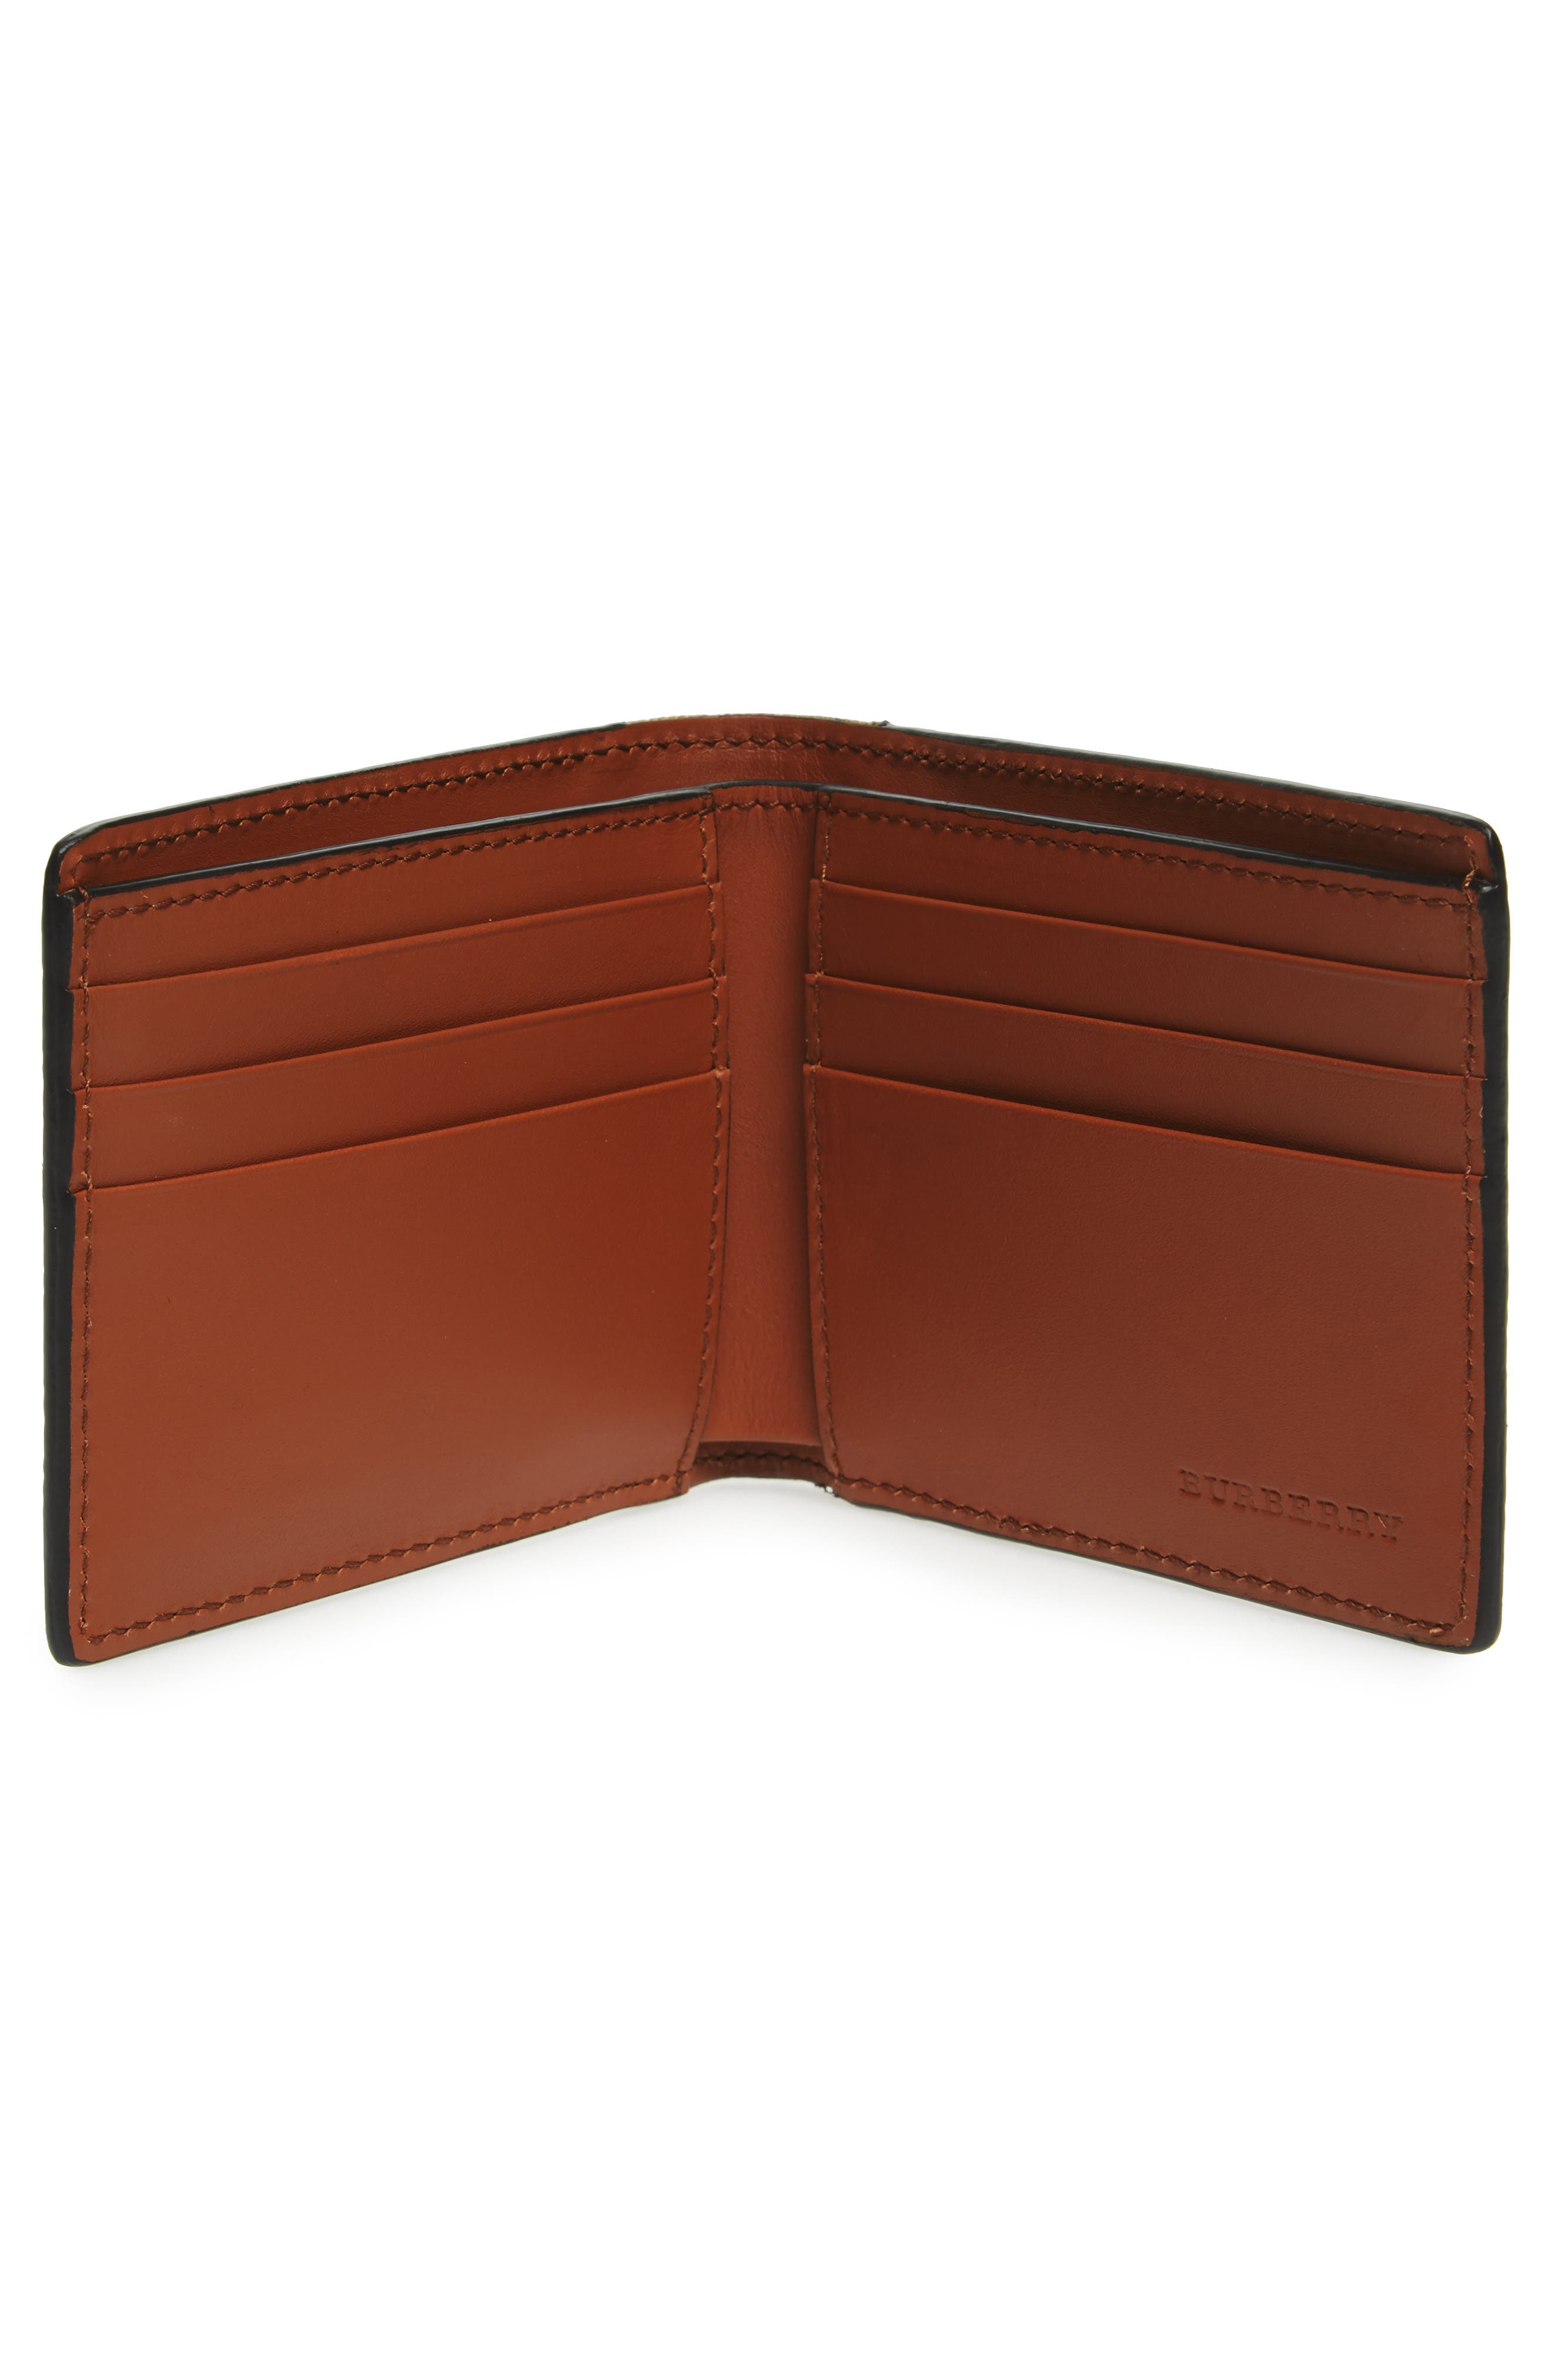 Leather Wallet,                             Alternate thumbnail 2, color,                             230